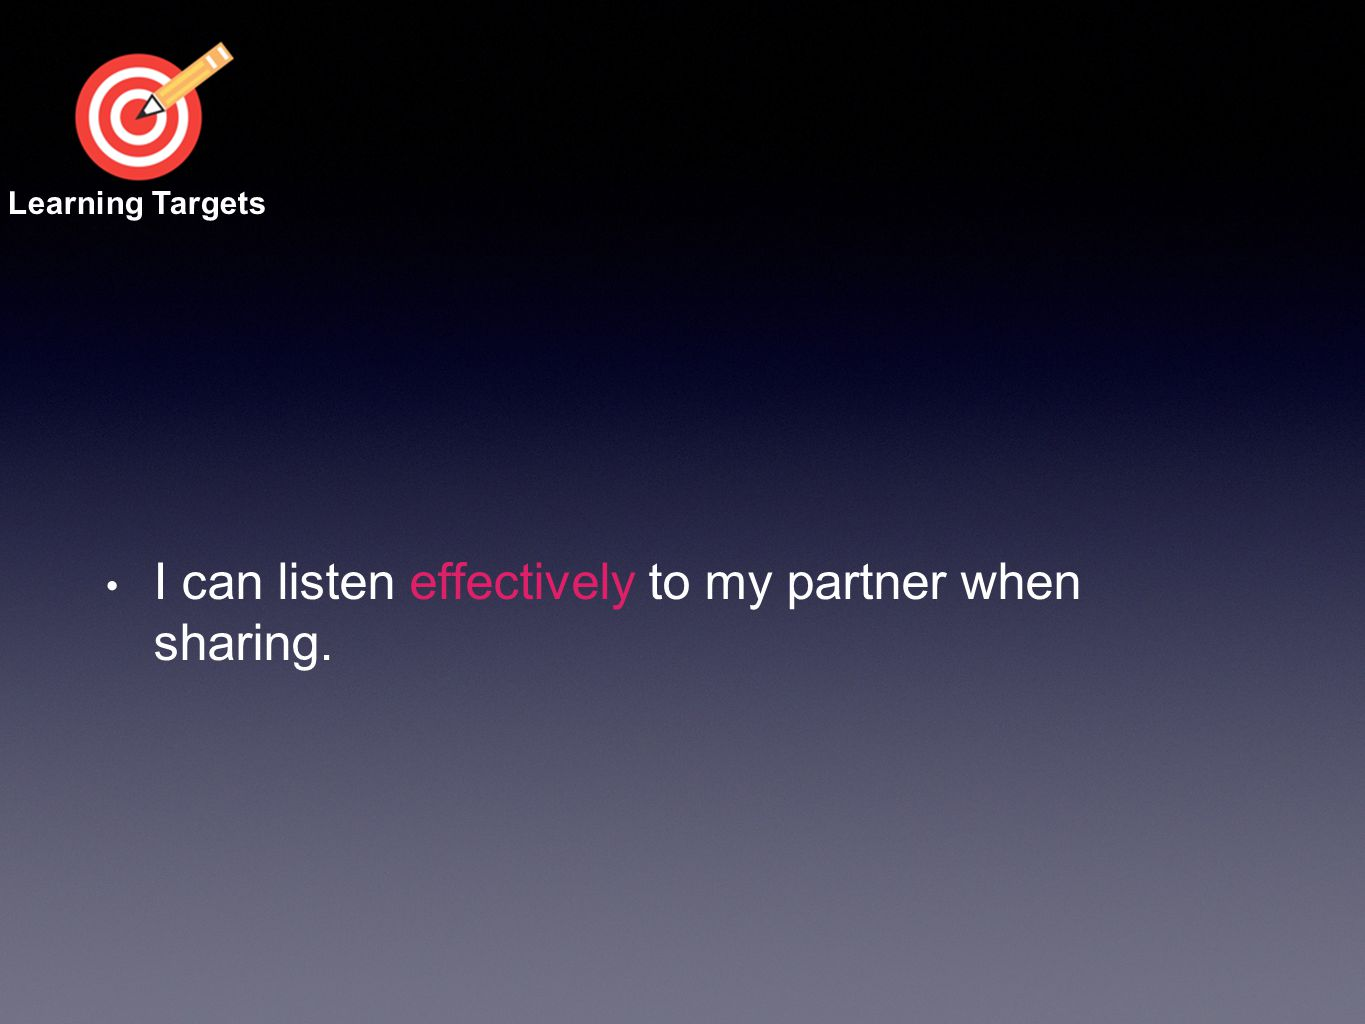 I can listen effectively to my partner when sharing. Learning Targets